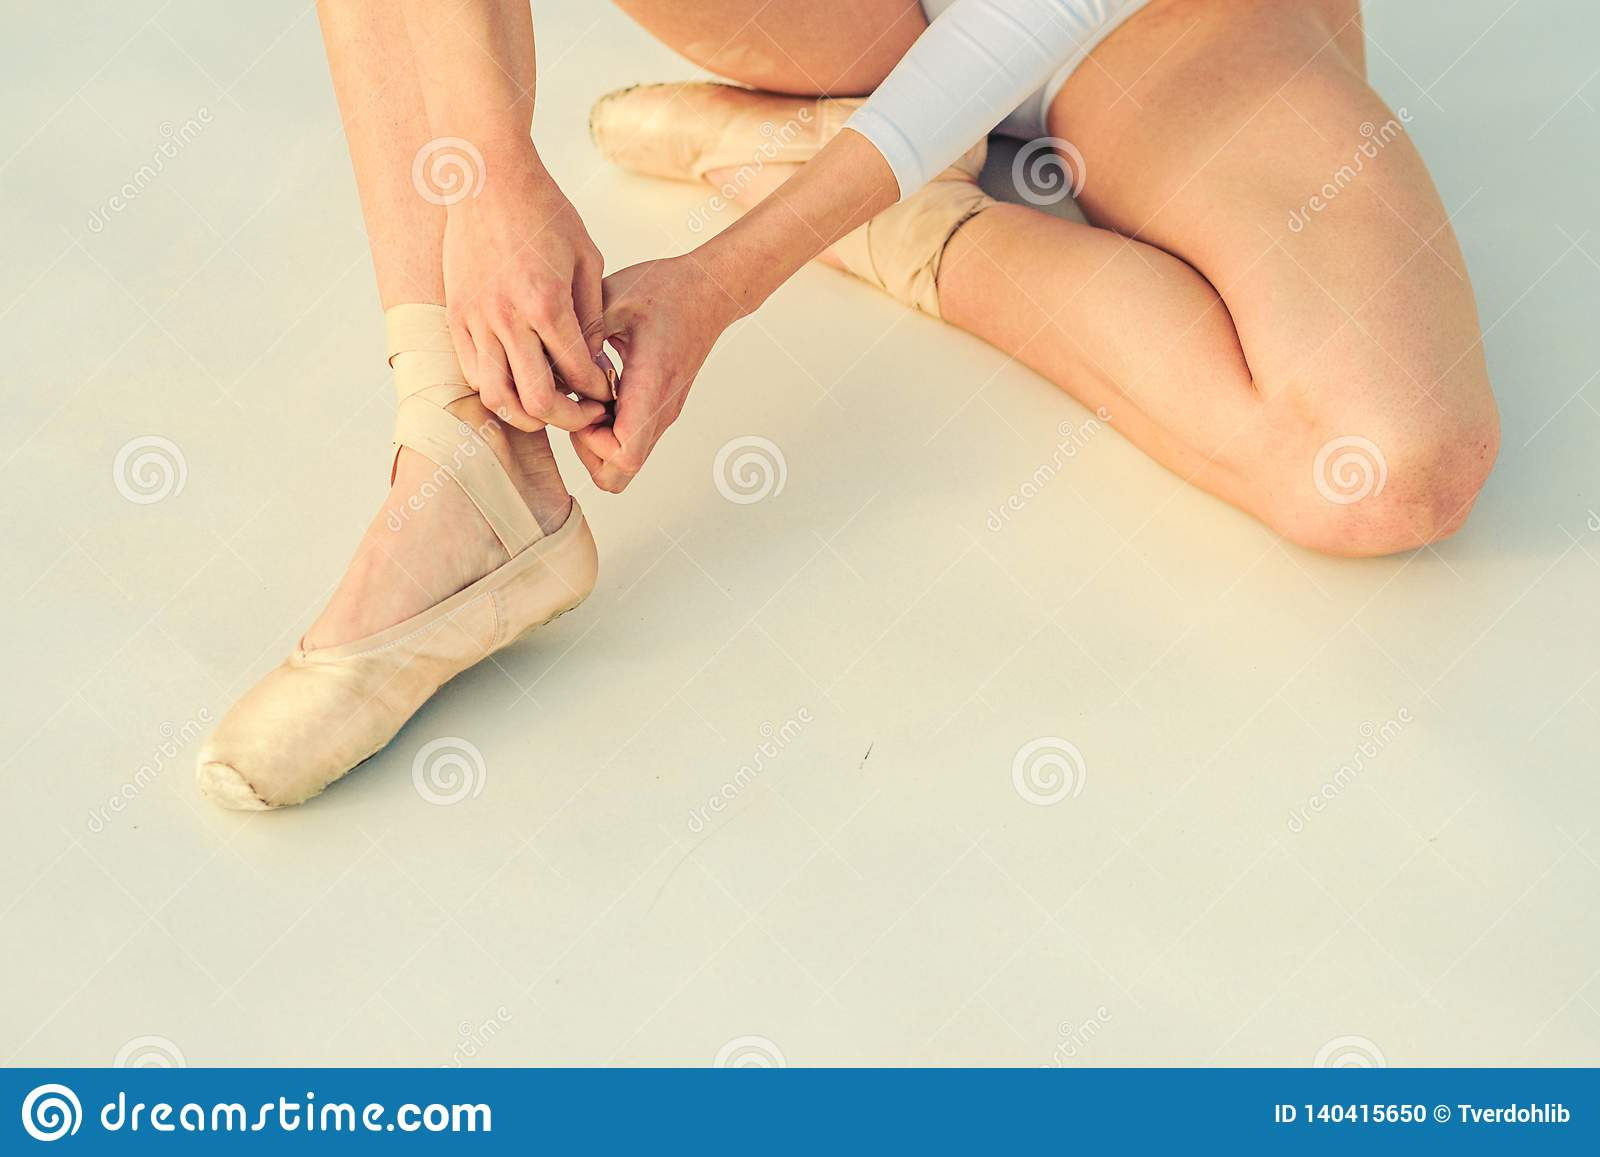 Dancing On Toes Lacing Ballet Slippers Female Feet In Pointe Shoes Ballerina Shoes Ballerina Legs In White Ballet Stock Photo Image Of Performance Graceful 140415650